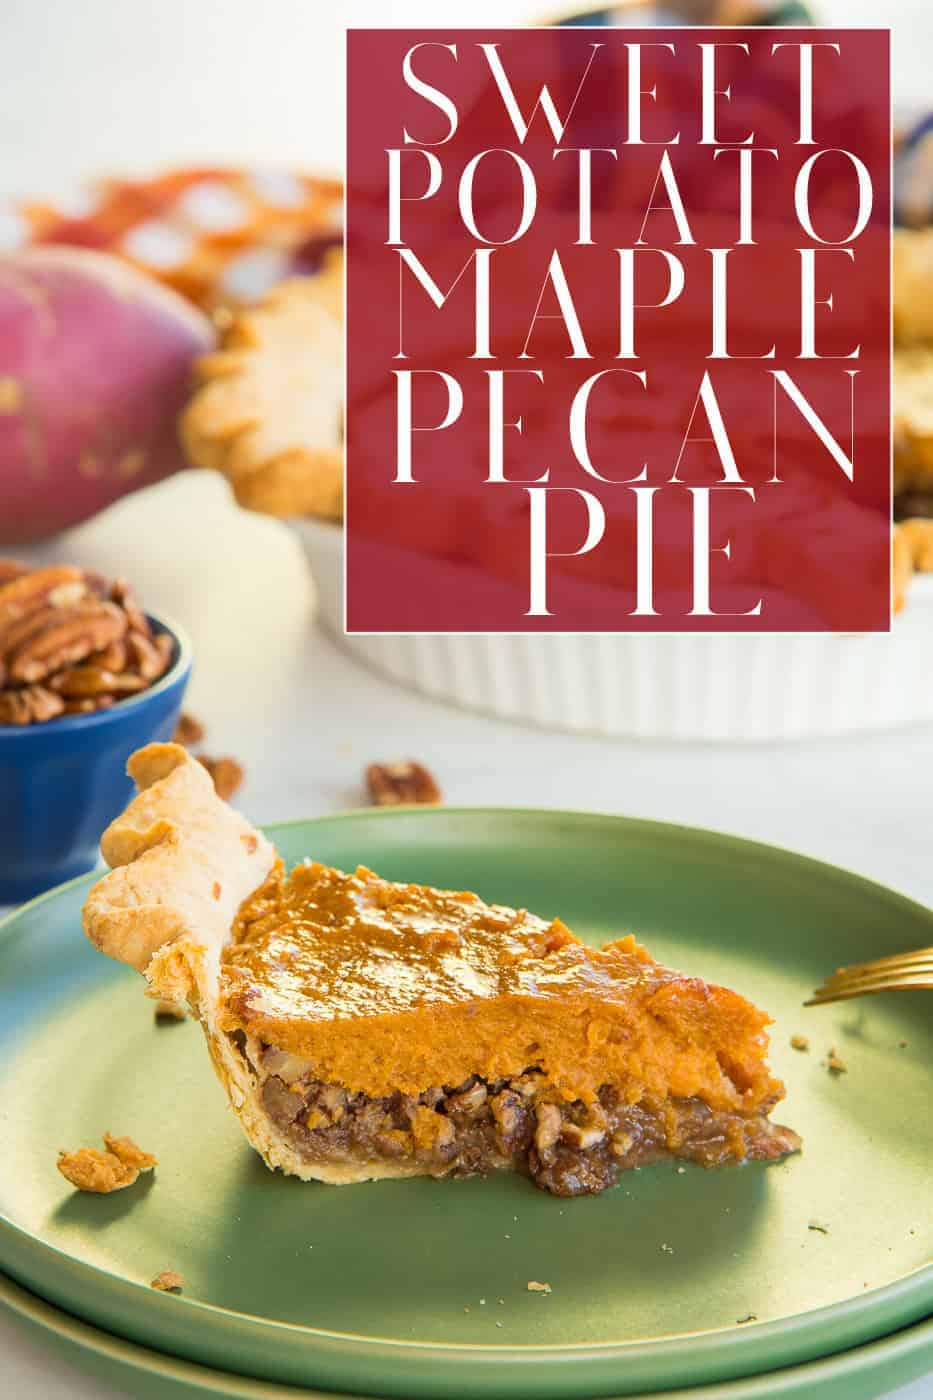 No need to choose between your favorite pies any longer. Combine the creamy spiced sweet potato pie with the caramel and nutty flavor of pecan pie in one fantastic dessert. This Sweet Potato Maple Pecan Pie is a must for all of your family gatherings and holiday meals. #sweetpotato #sweetpotatopie #sweetpotatopuree #maplesyrup #mapledessert #sweetpotatopierecipe #pecanpie #pecanpierecipe #maplepecanpie #sweetpotatopecan #holidaybaking #holidaydessert #holidayrecipe #holidaypie #Thanksgiving #Christmas #NewYears via @ediblesense